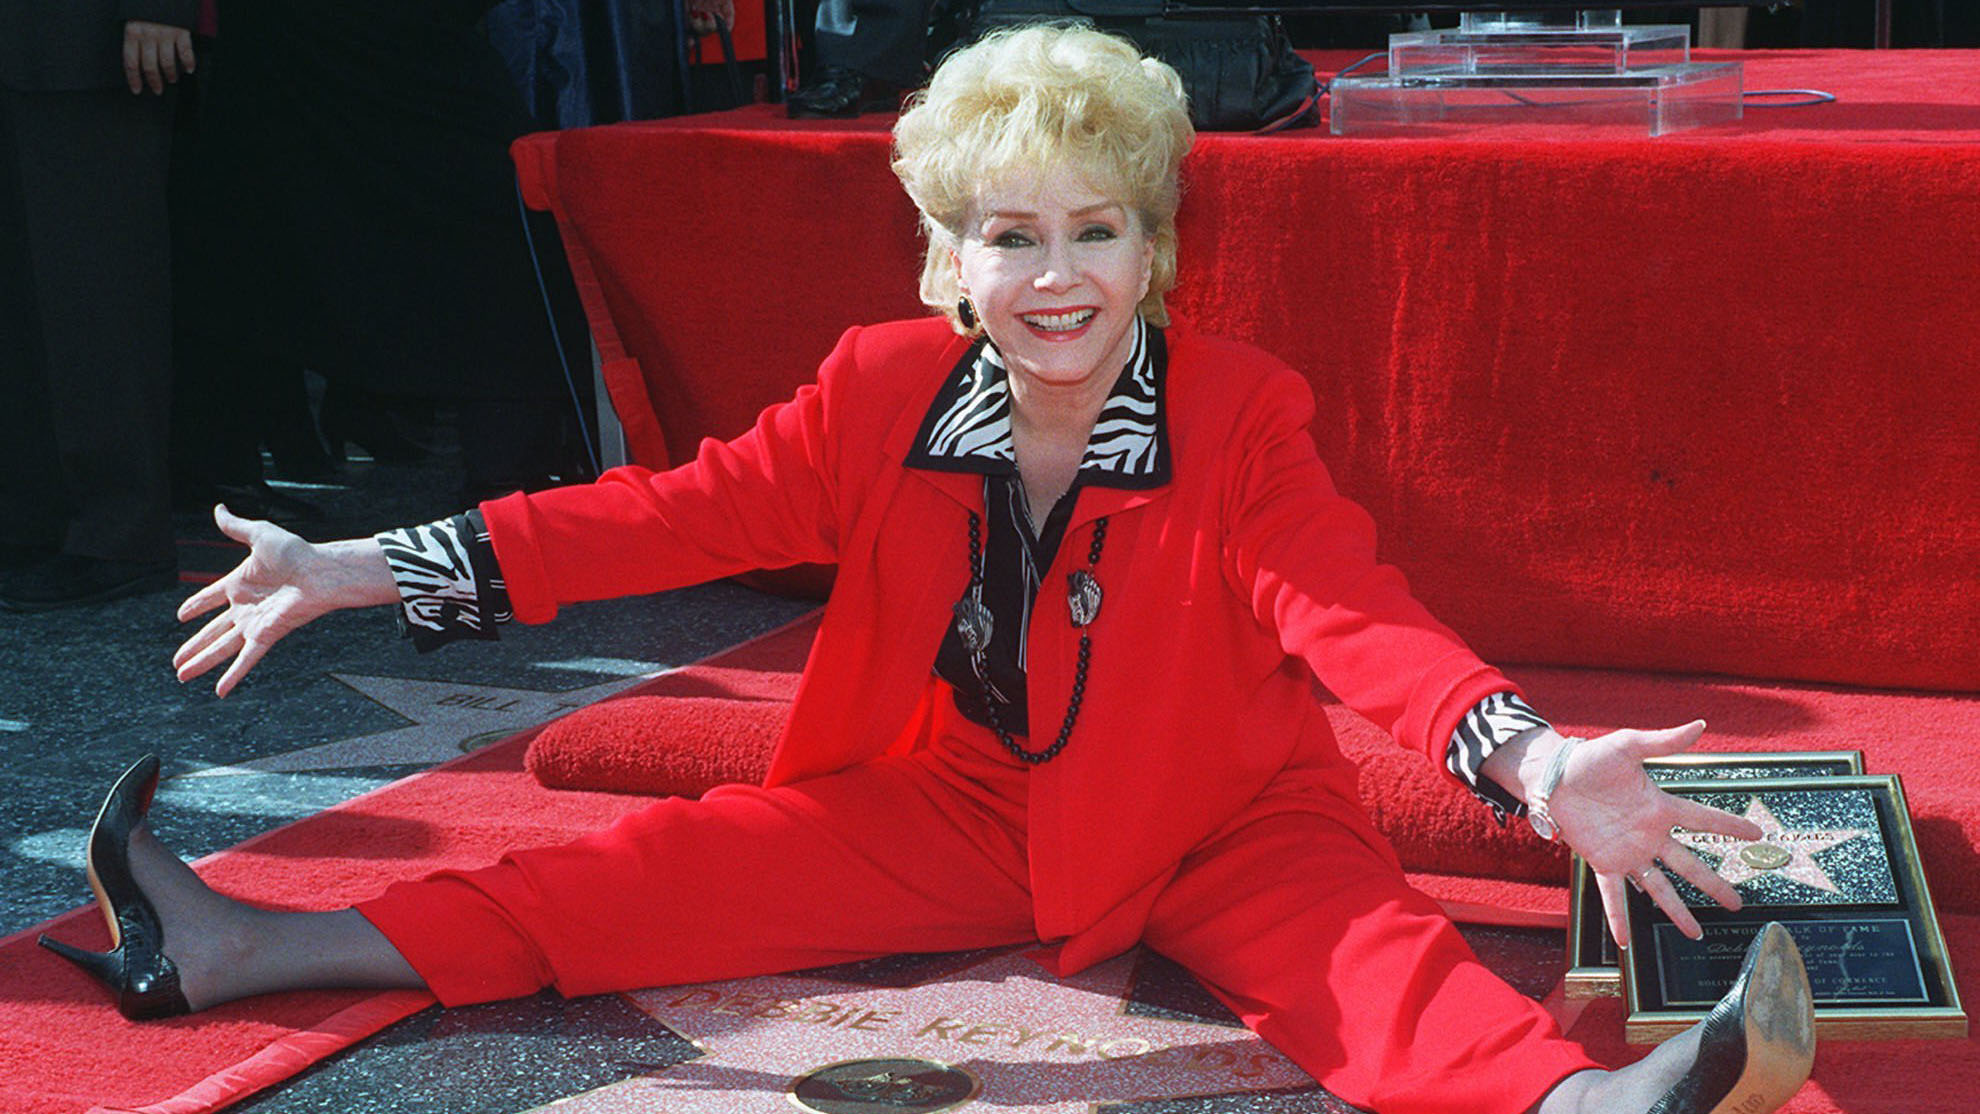 Reynolds with her second star of fame on the Hollywood Walk of Fame, 1997. (AAP)